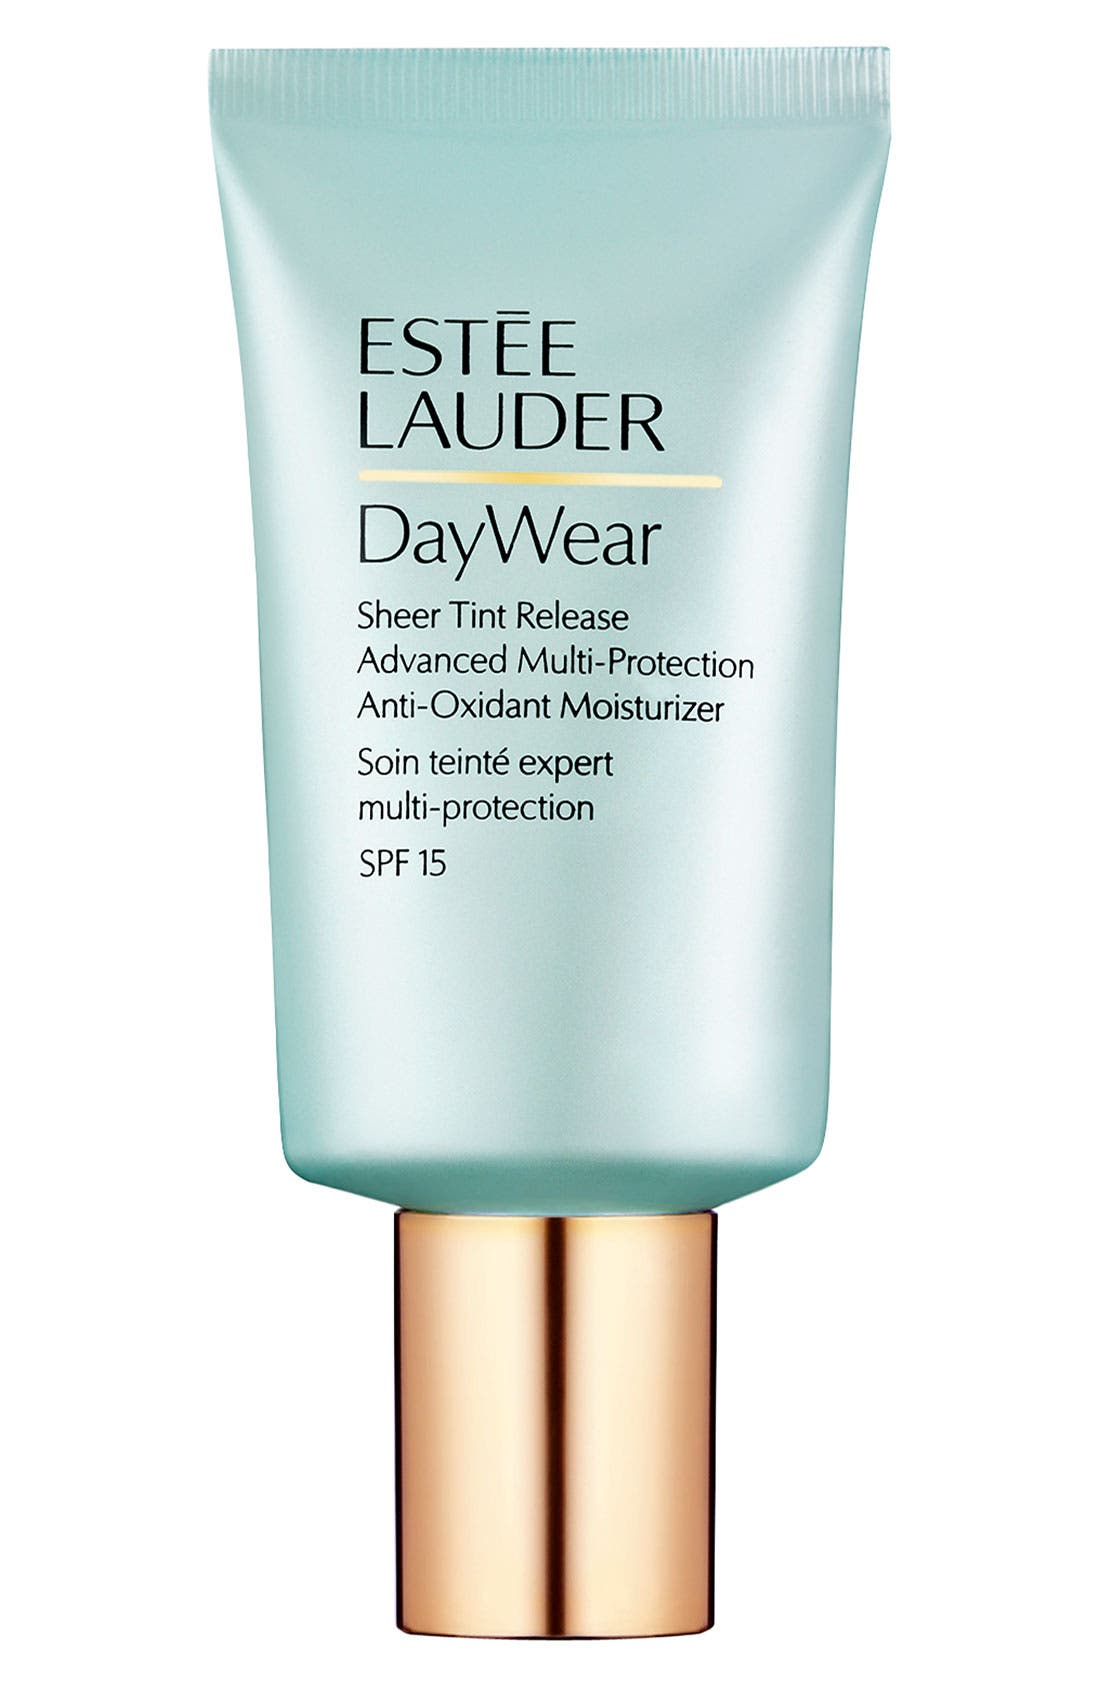 DayWear Sheer Tint Release Advanced Multi-Protection Anti-Oxidant Moisturizer SPF 15,                             Main thumbnail 1, color,                             NO COLOR